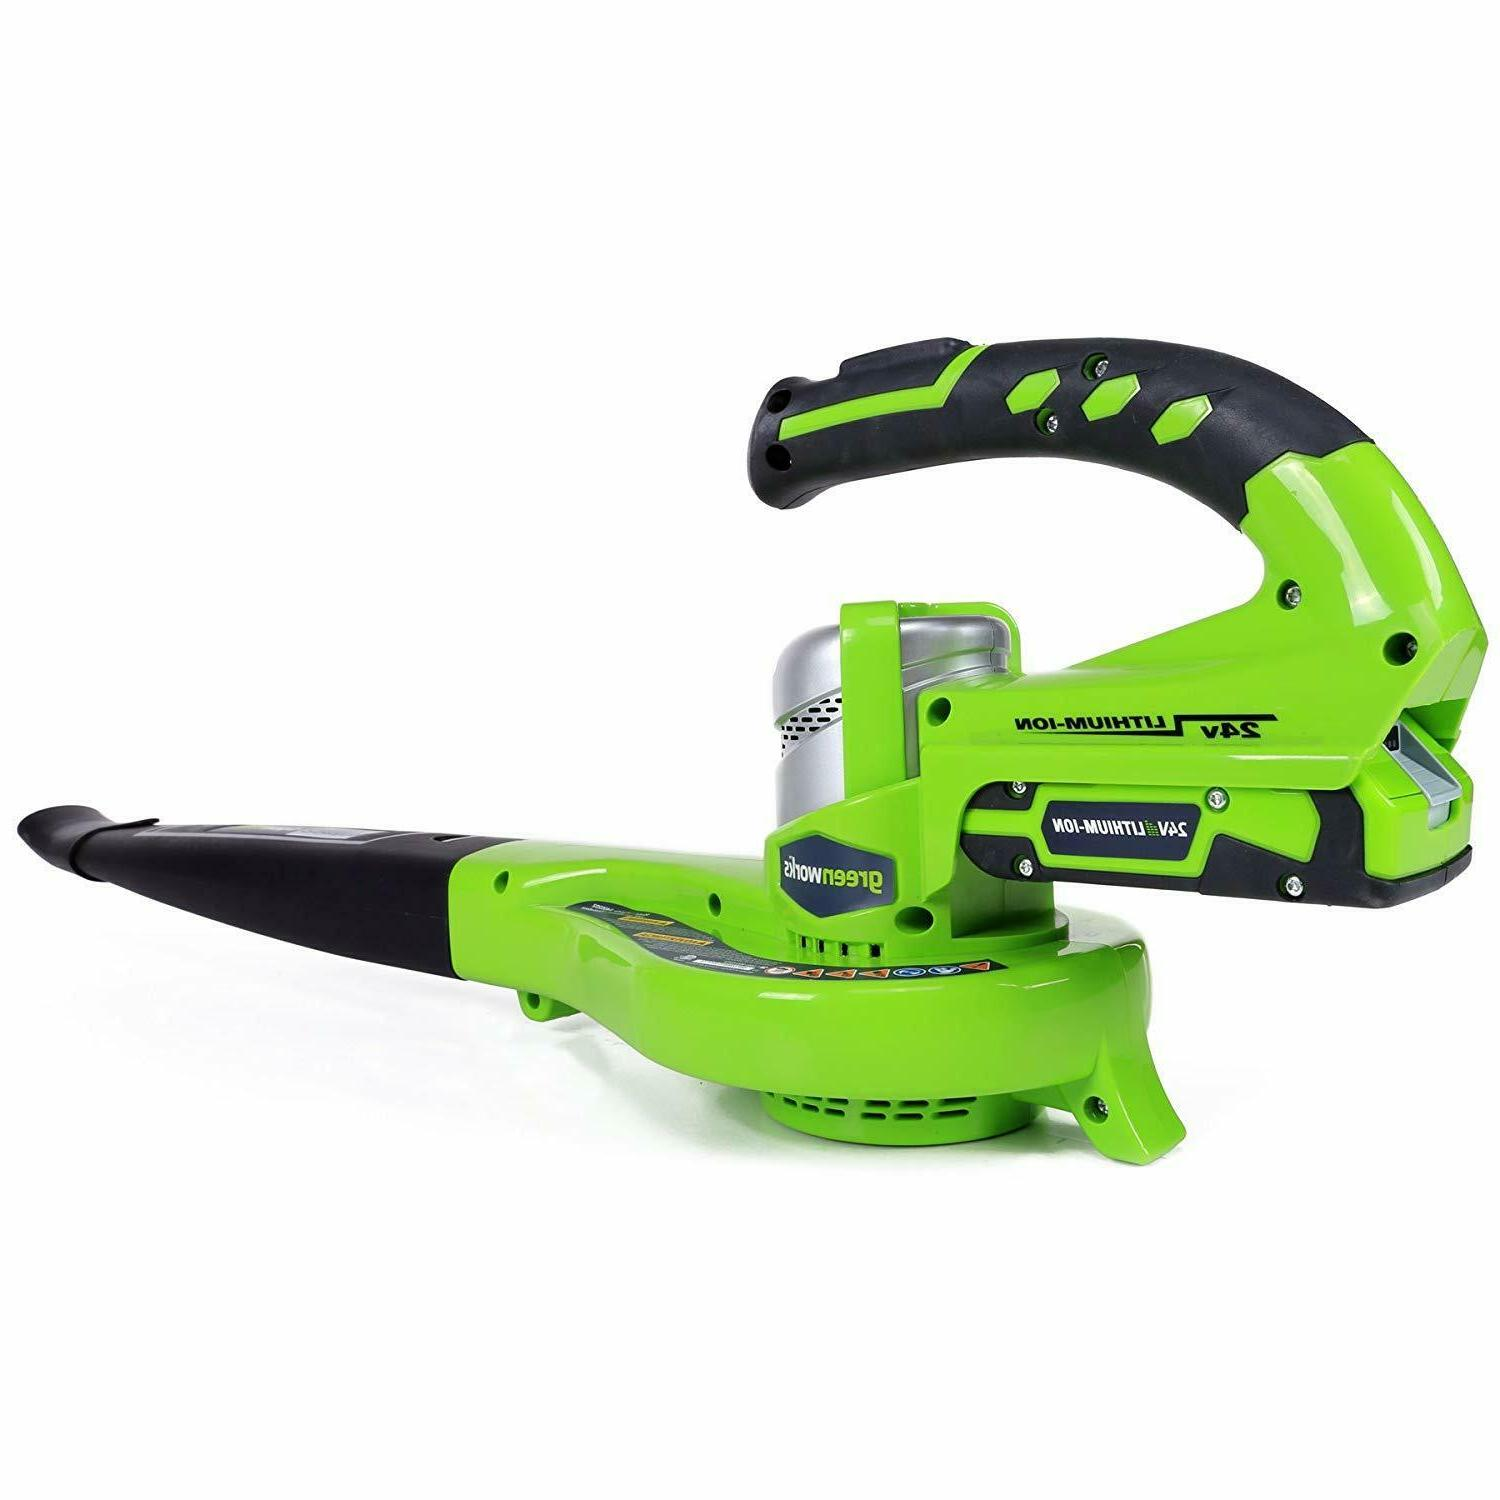 Leaf Cordless 24 Lithium Battery Powered Dual